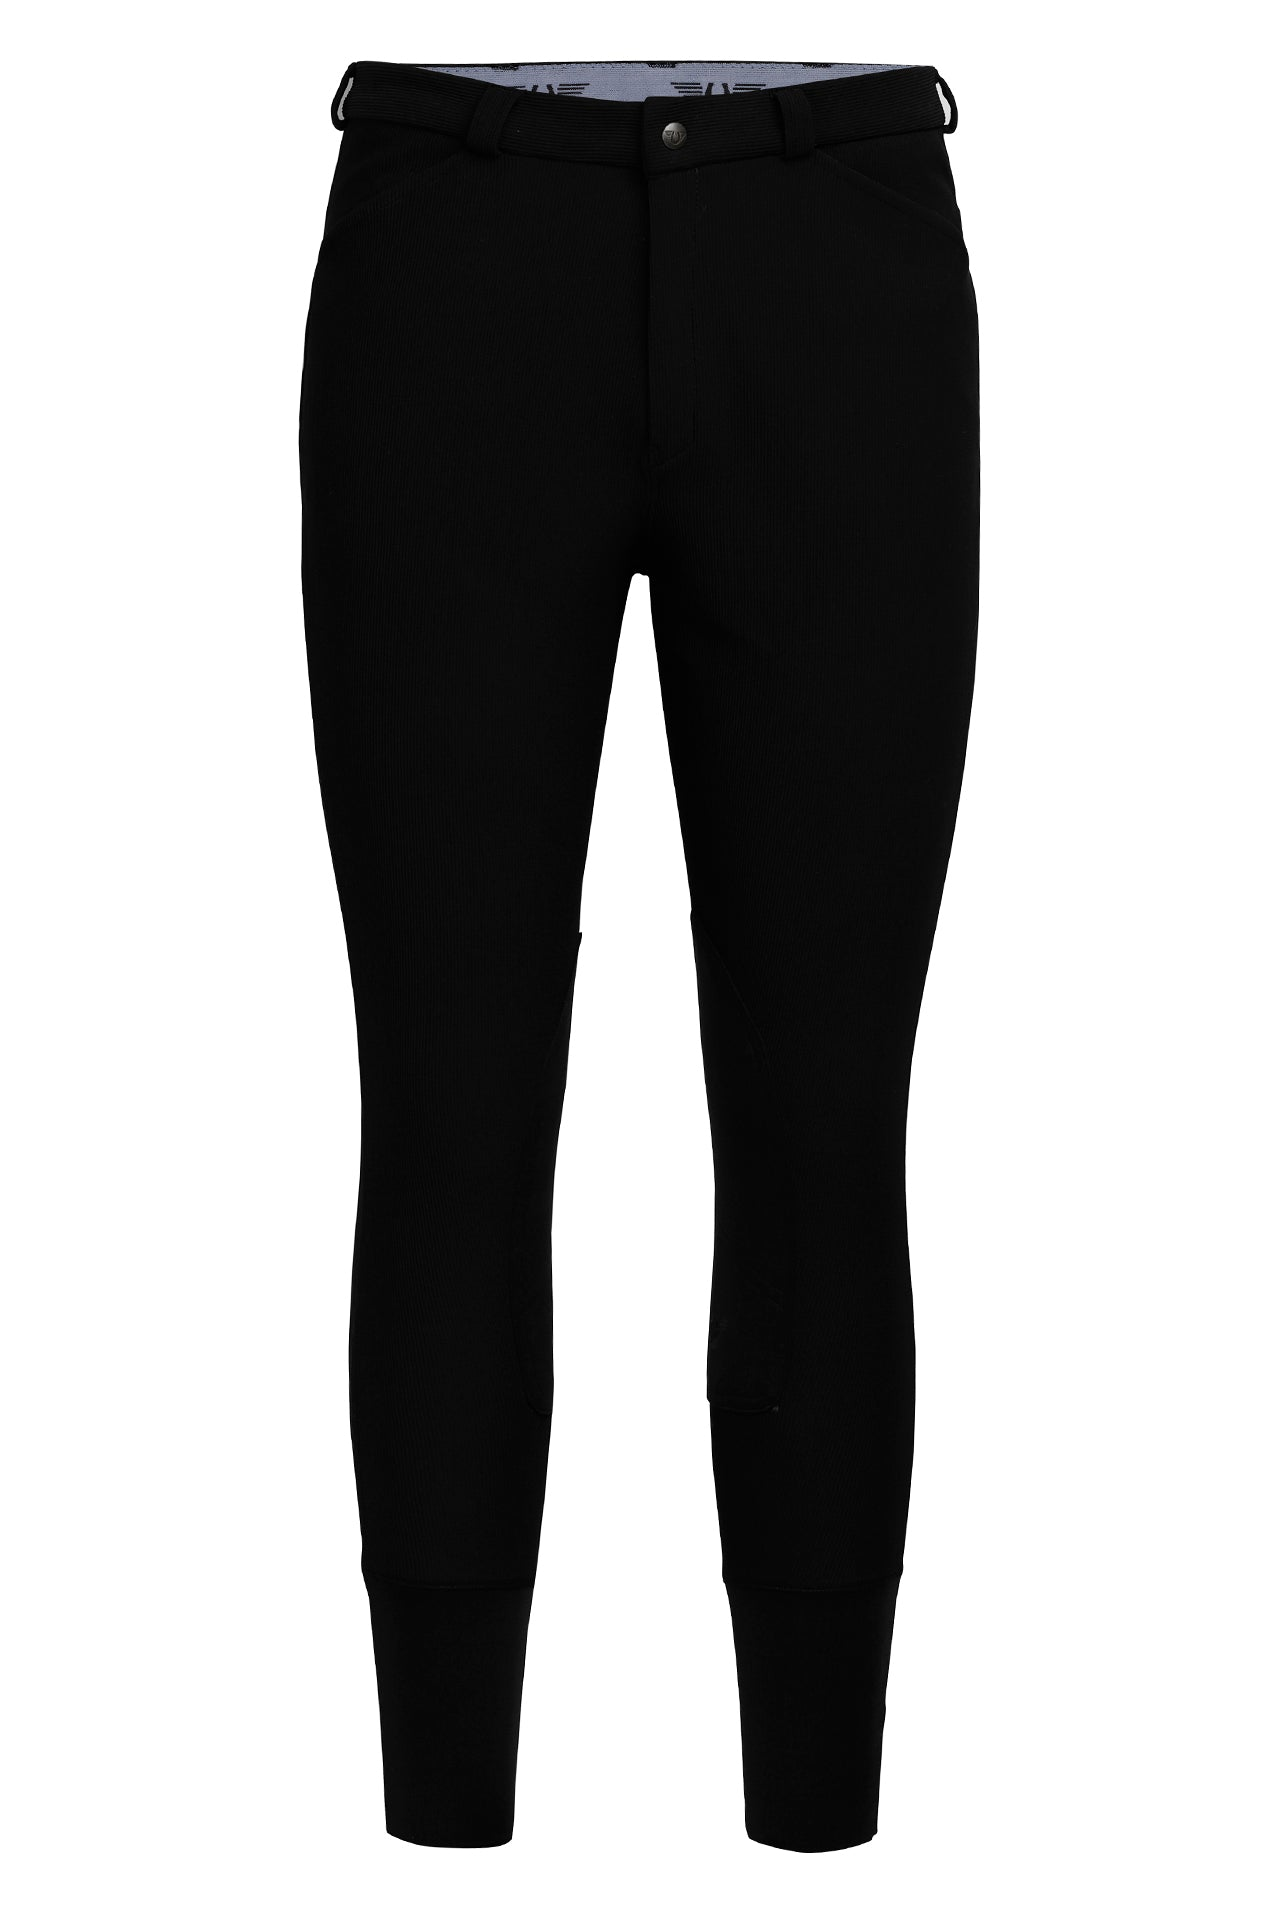 Tuffrider Men's Long Ribb Knee Patch Breeches - Breeches.com